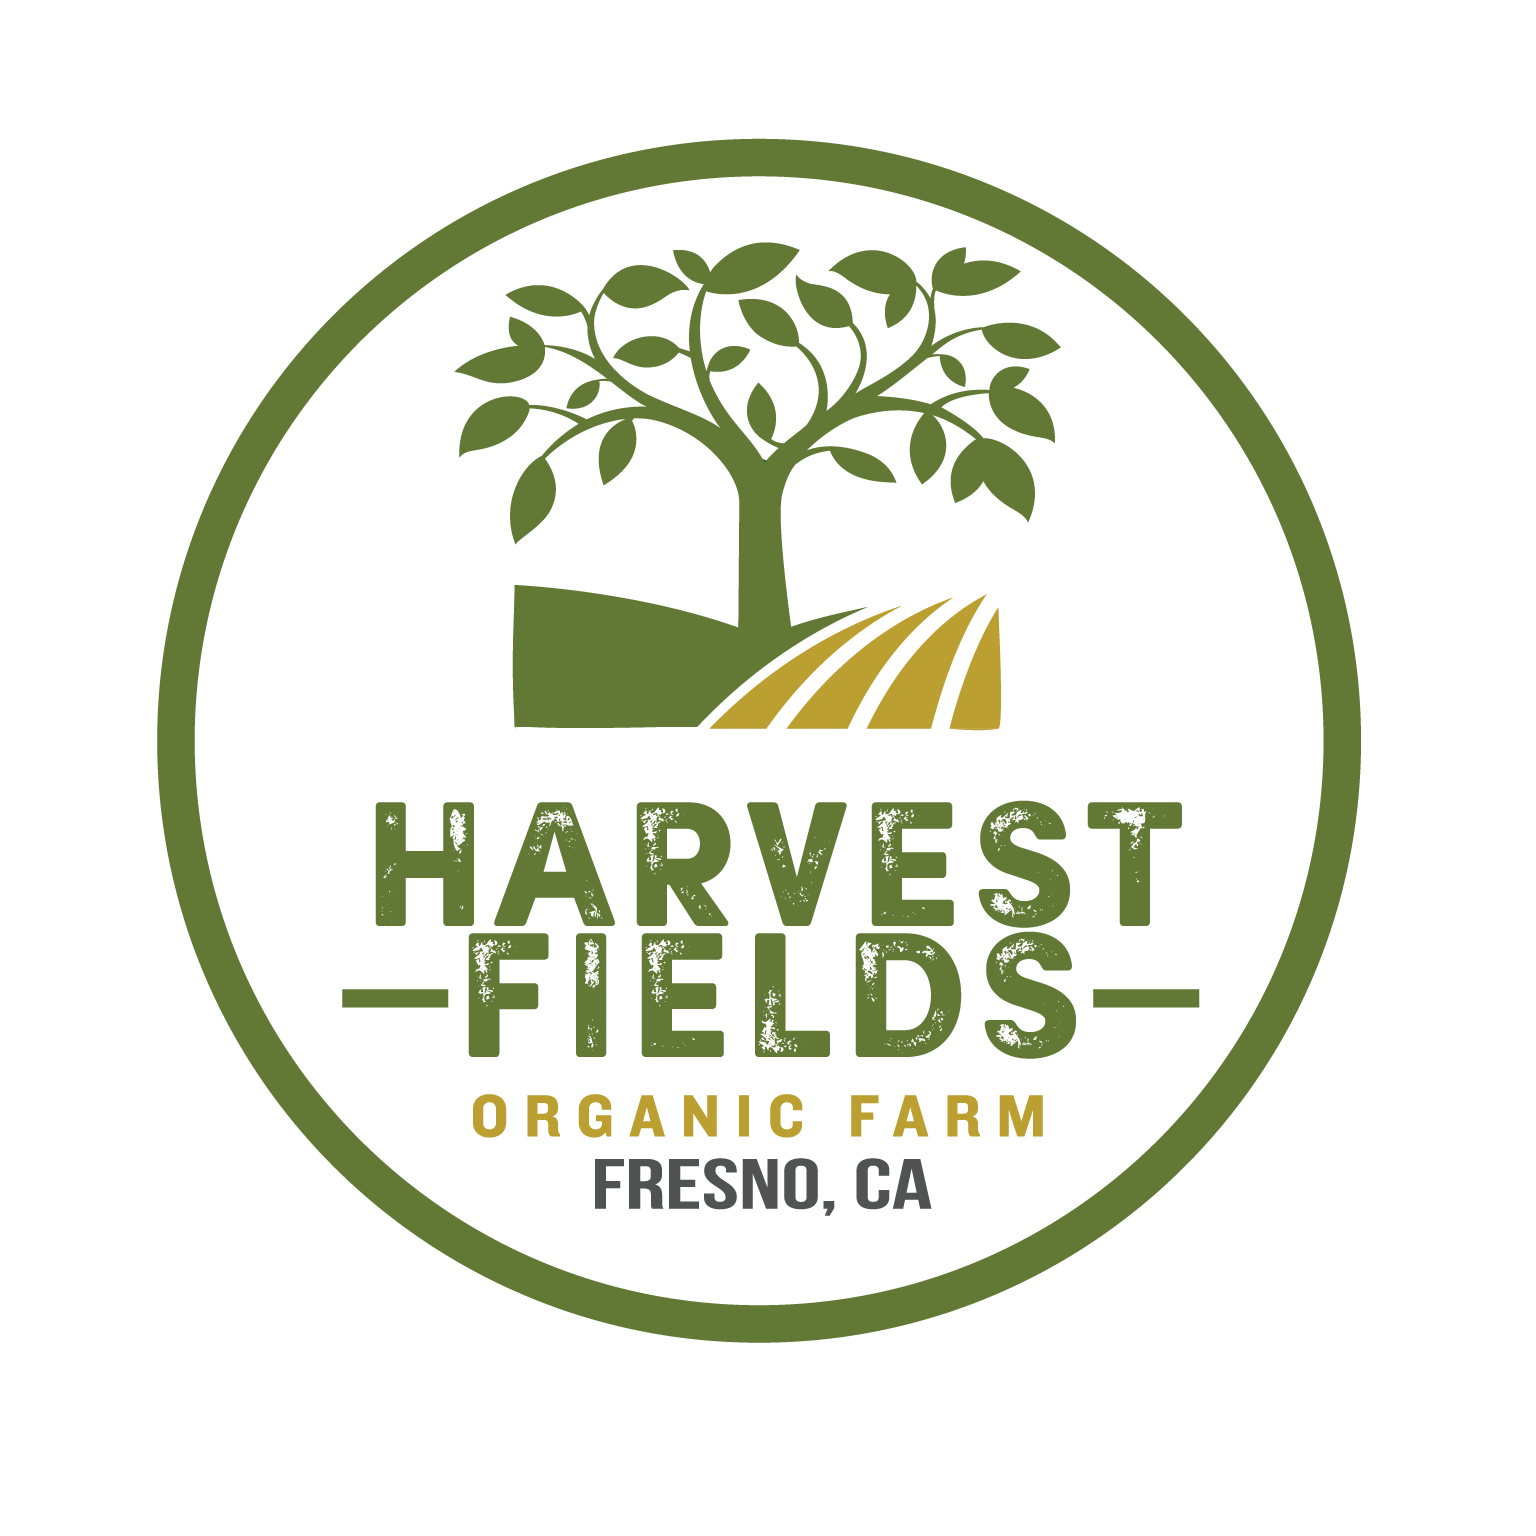 Harvest Fields Organics